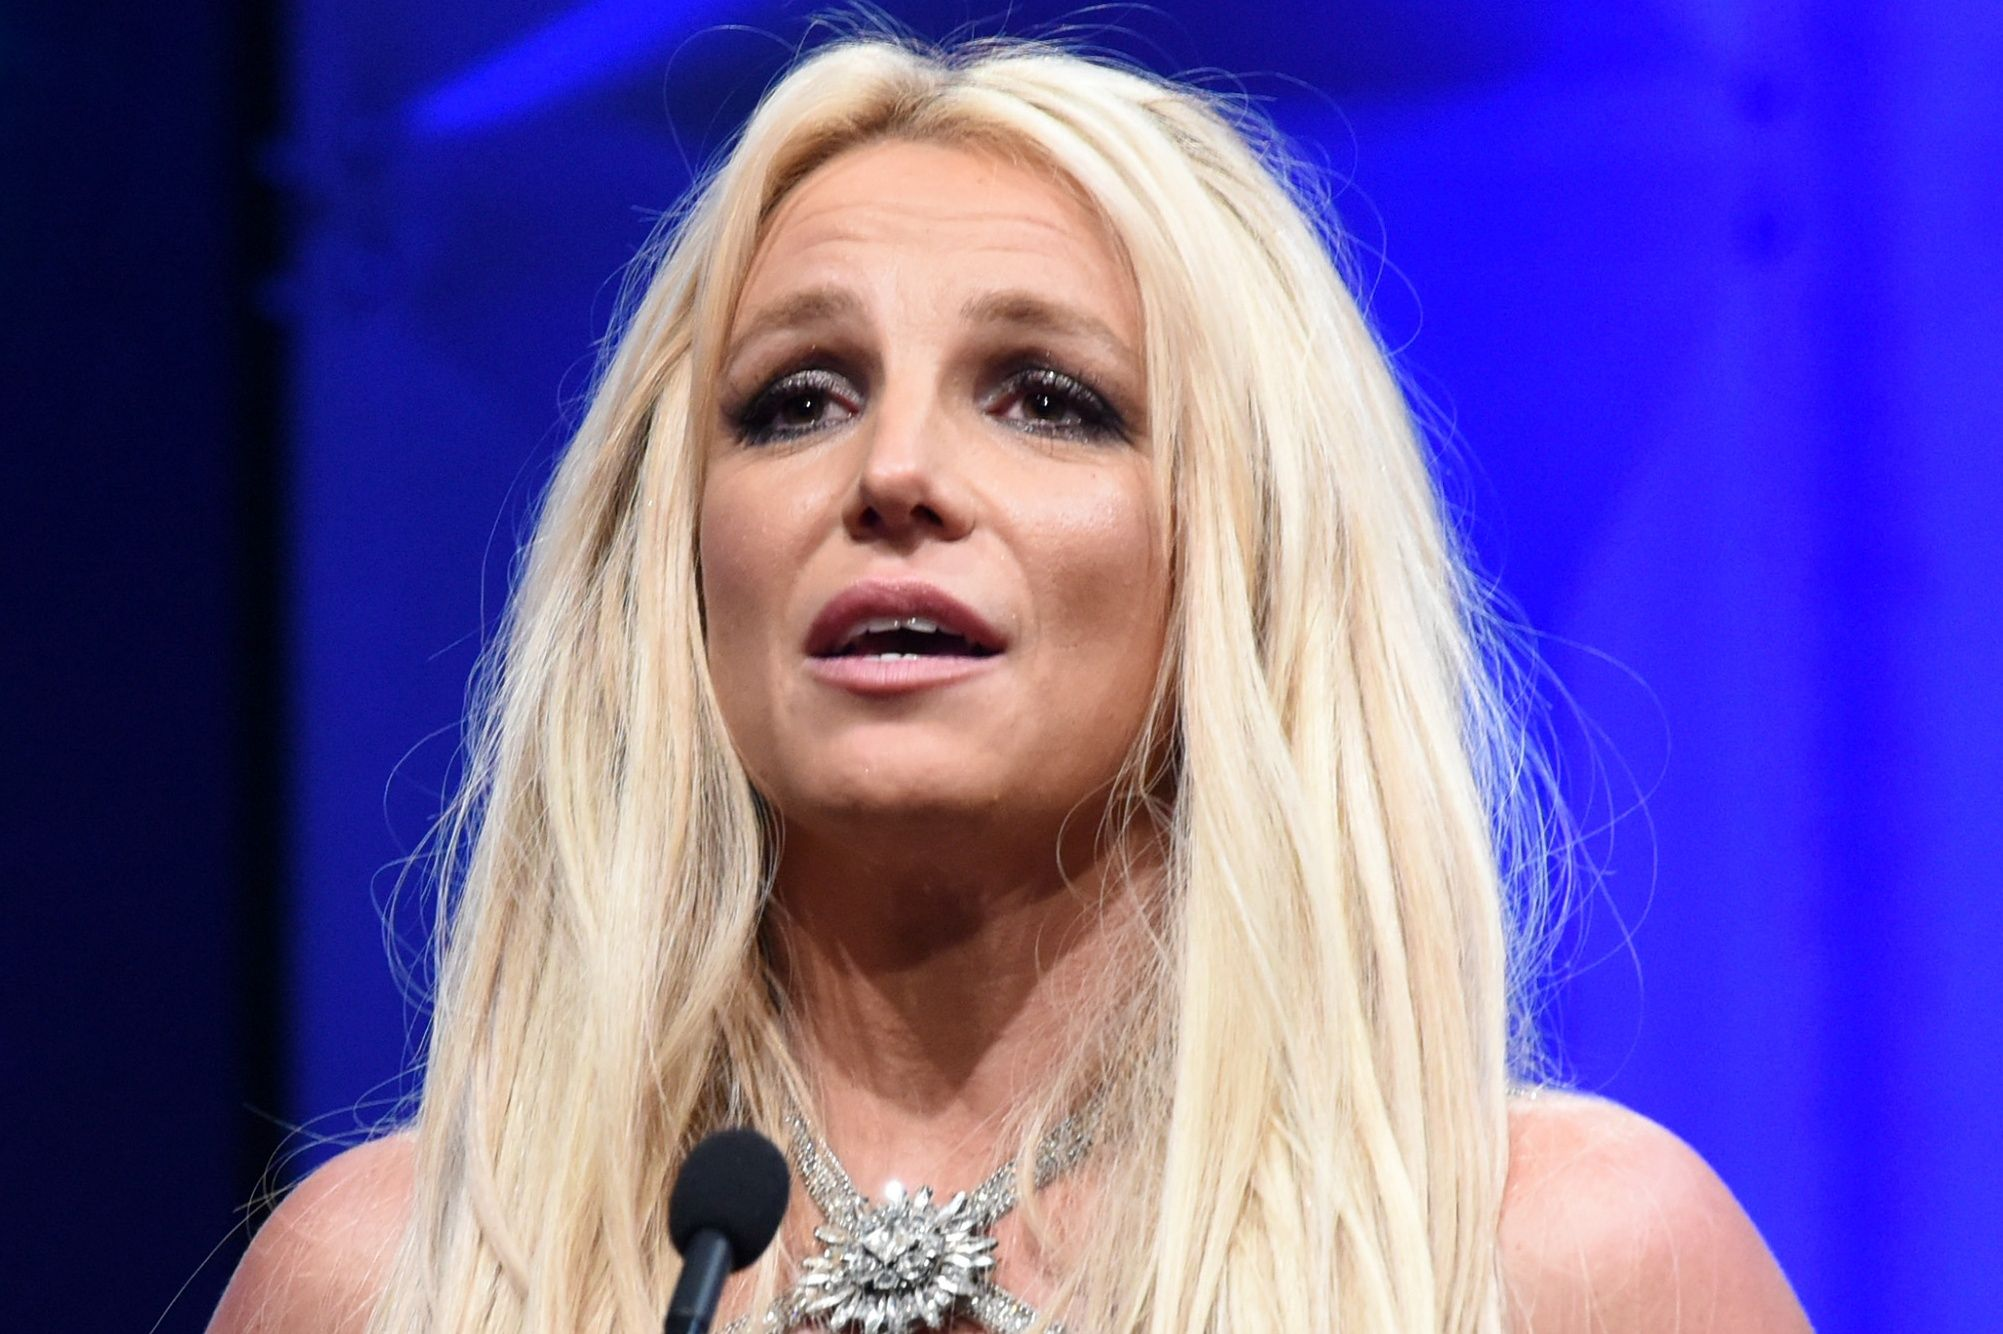 britney-spears-says-her-documentary-made-her-cry-for-weeks